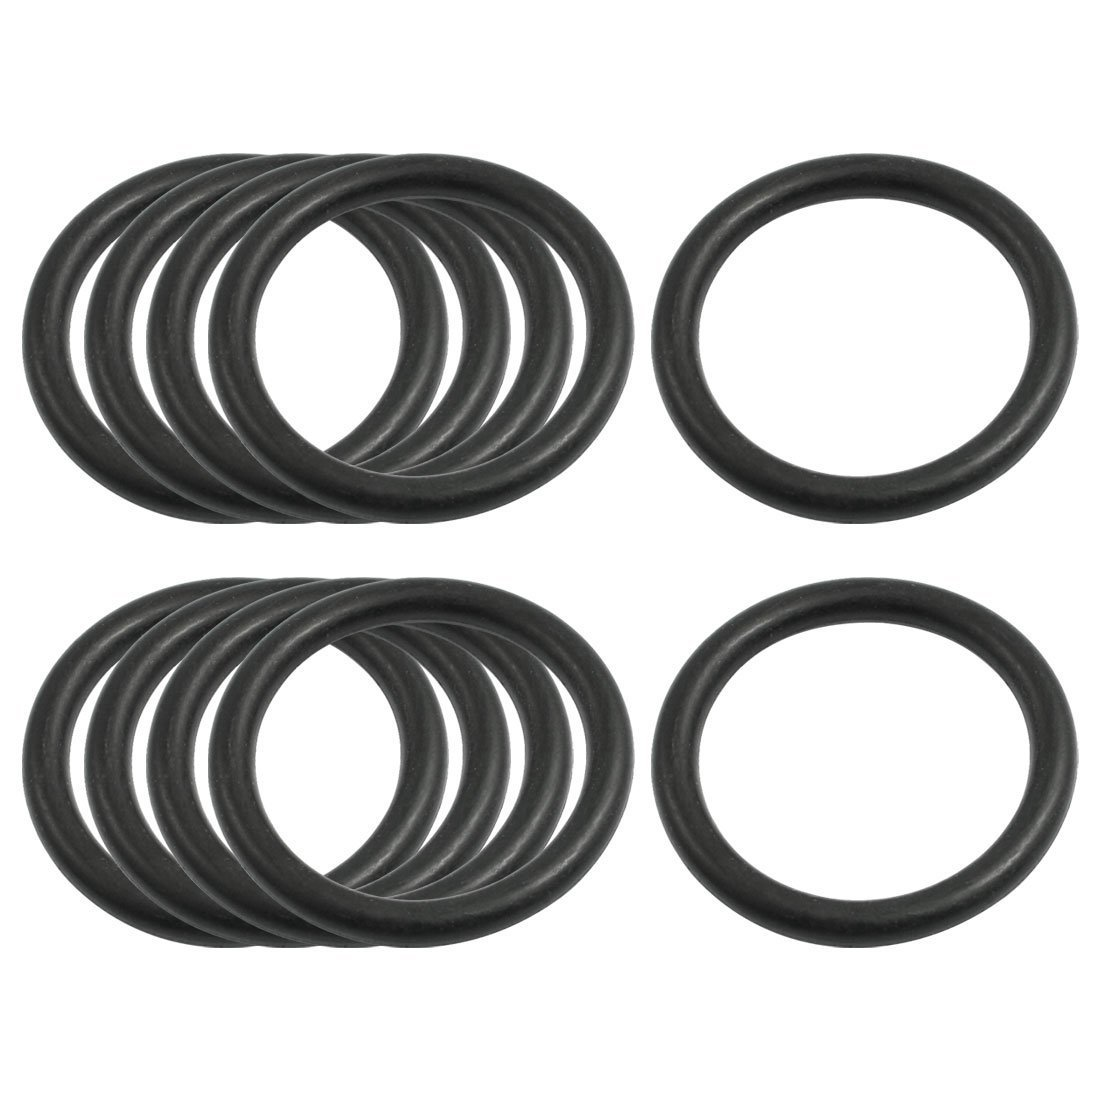 sourcingmap® 10 Pcs Oil Seal O Rings Black Nitrile Rubber 36mm OD 4mm Thickness a12101500ux0214